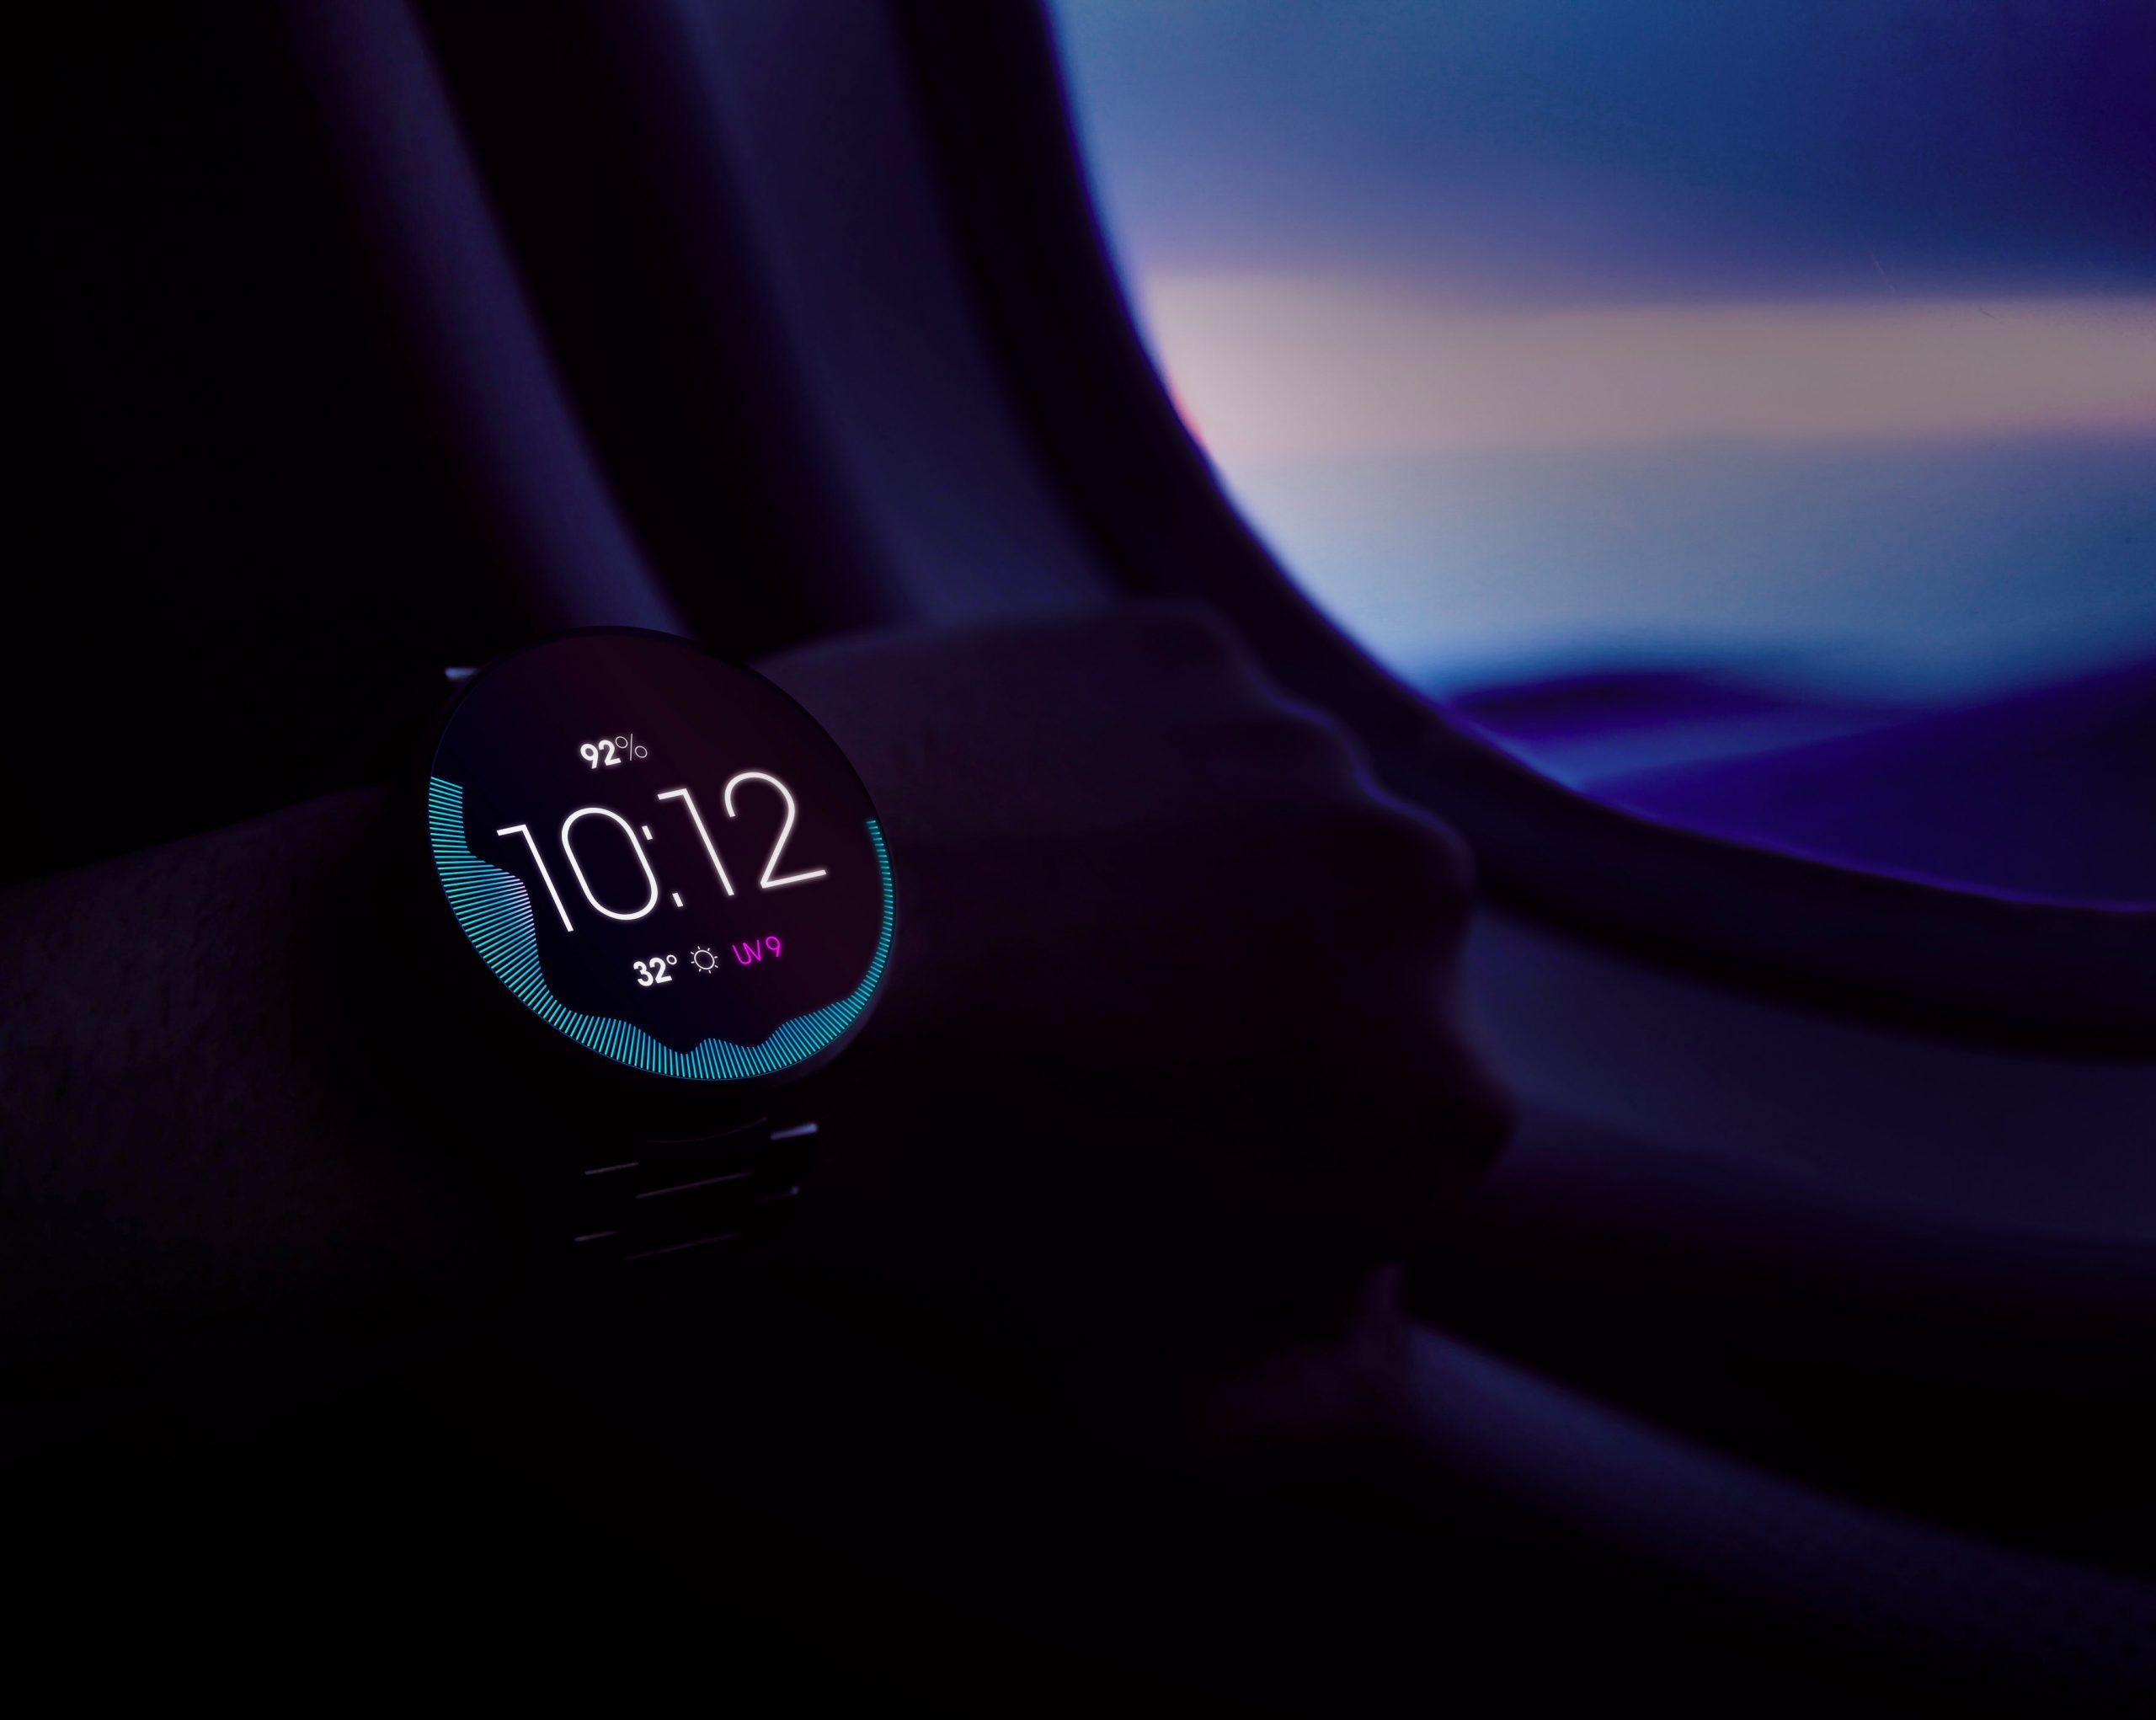 Connected wearables